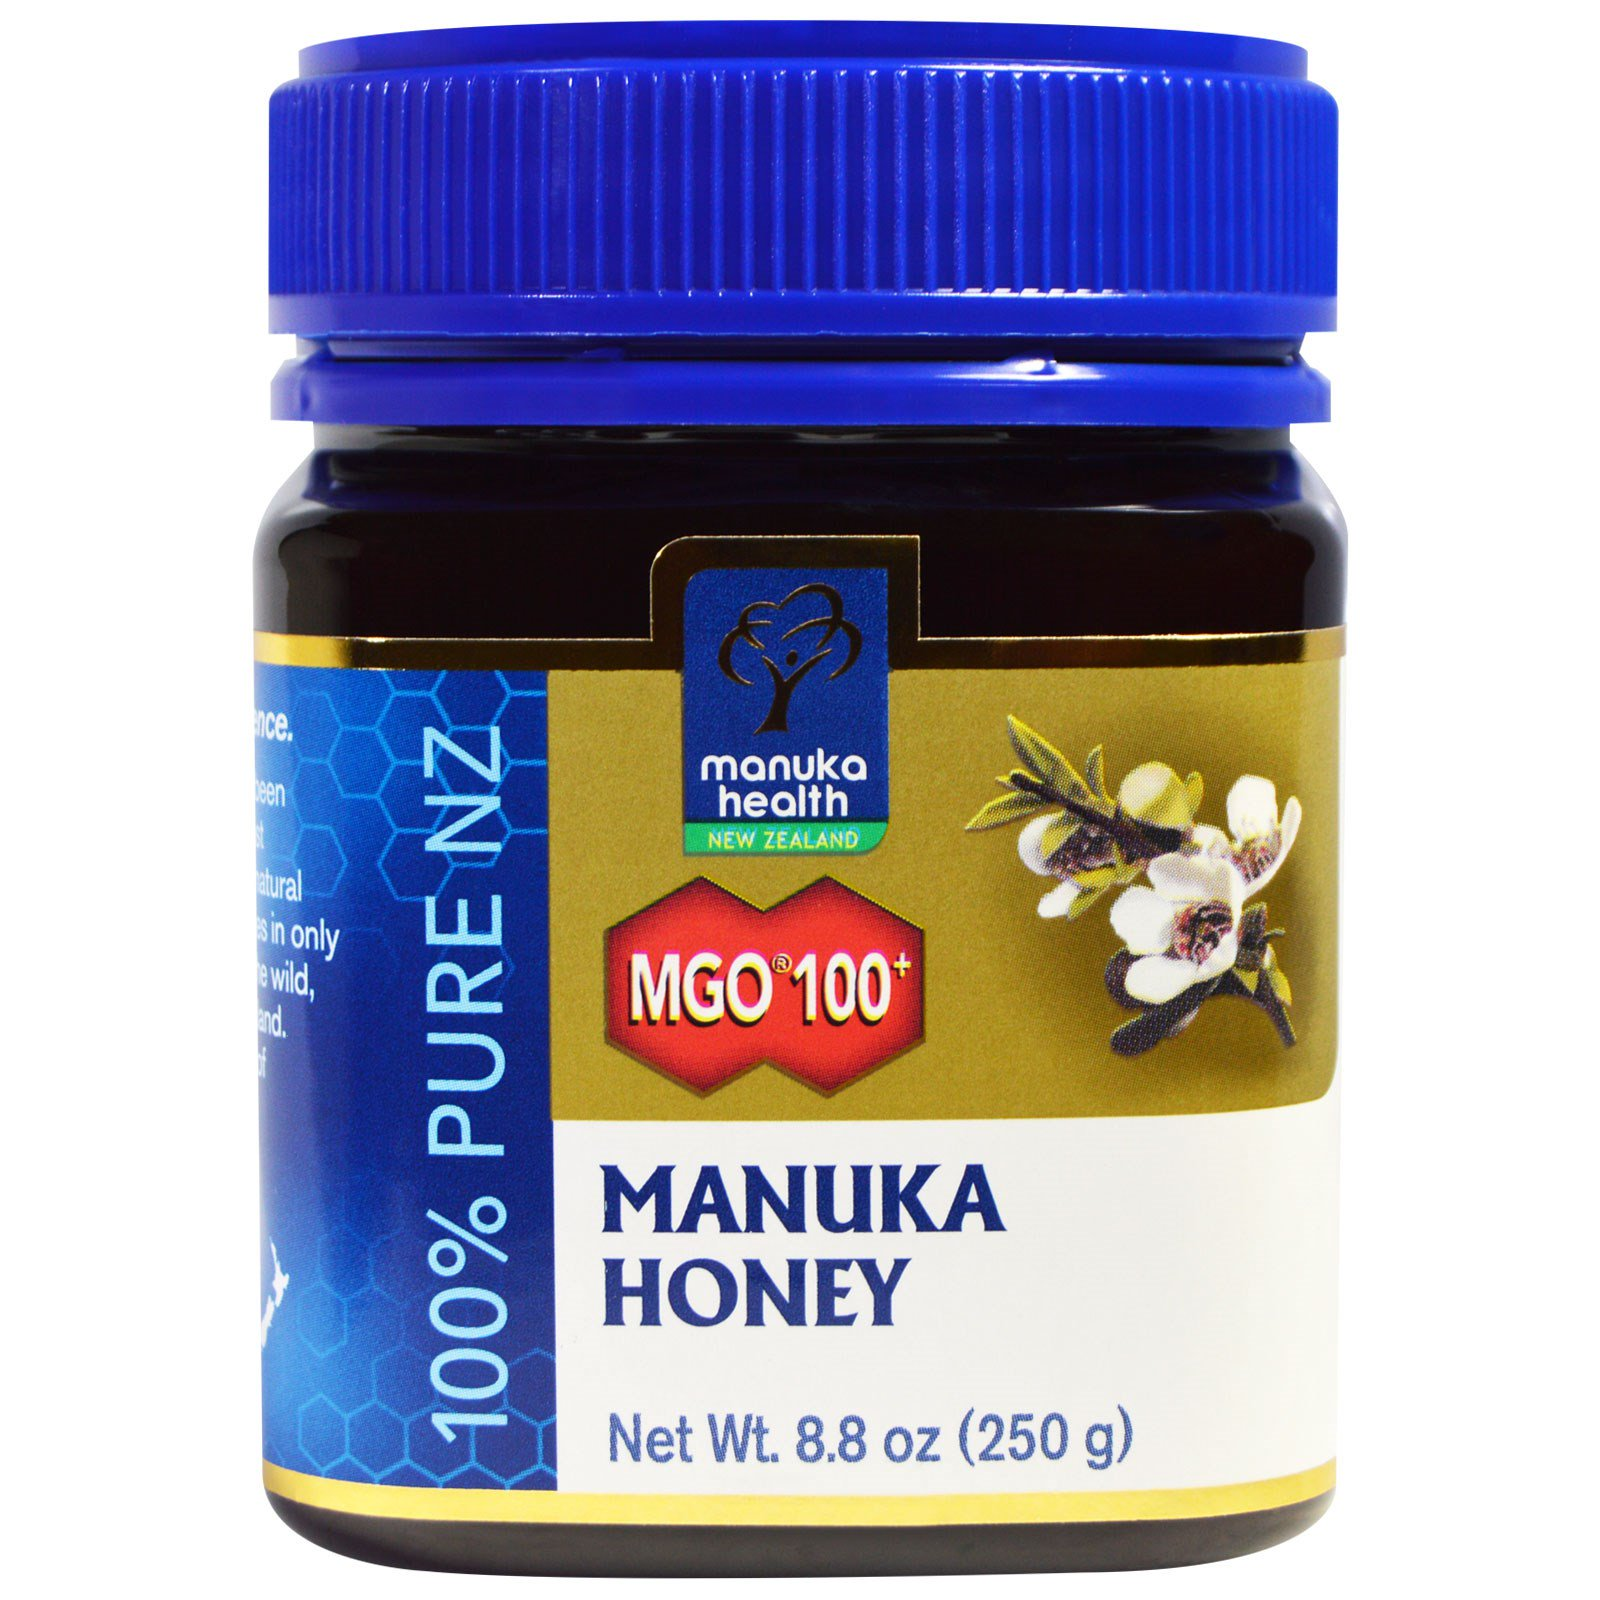 Manuka health manuka honey mgo 100 88 oz 250 g iherb manuka health manuka honey mgo 100 izmirmasajfo